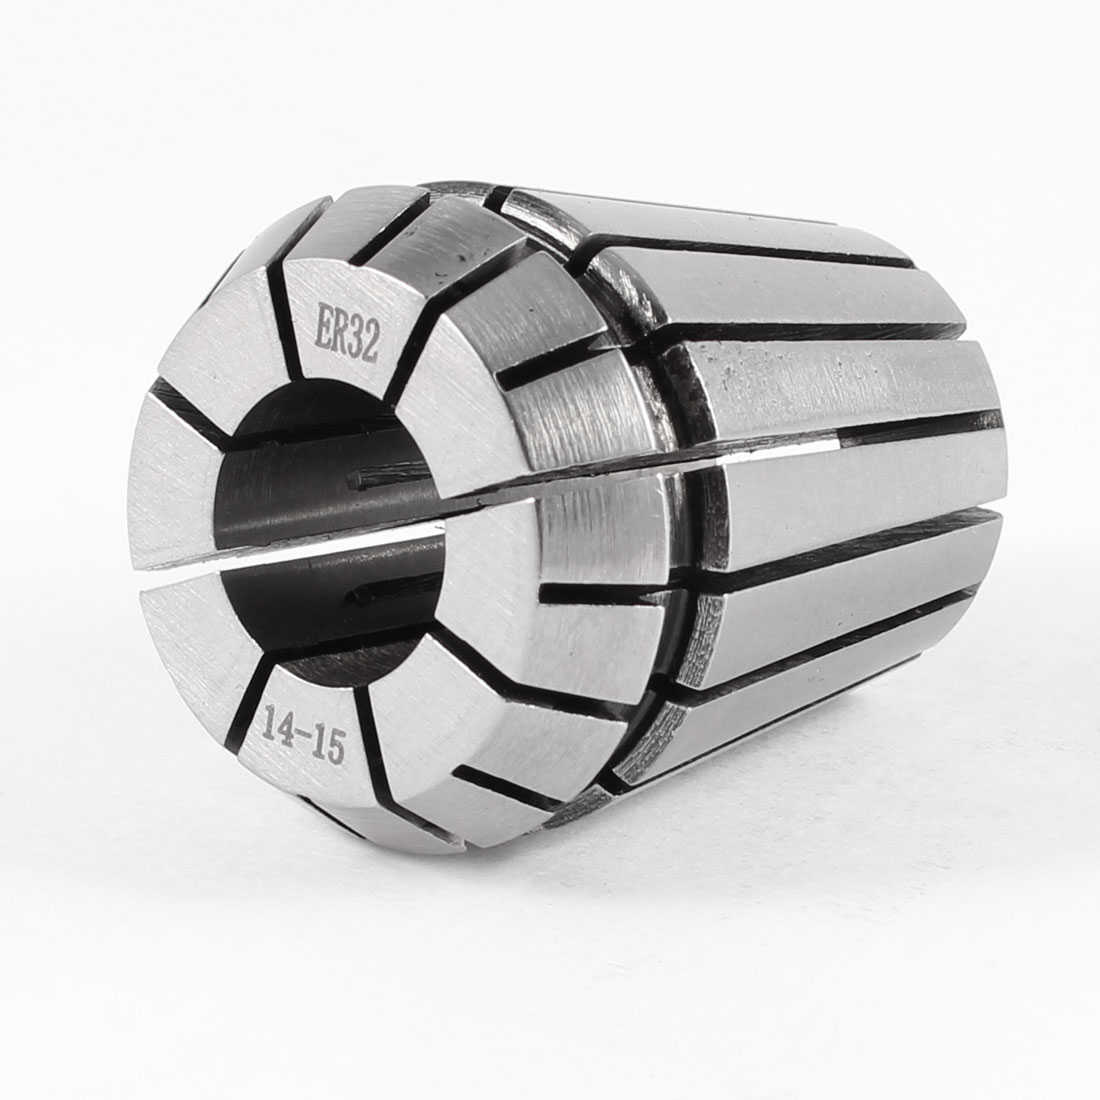 Unique Bargains Machine ER32 Precision Stainless Steel Collet Chuck 14-15mm Clamping